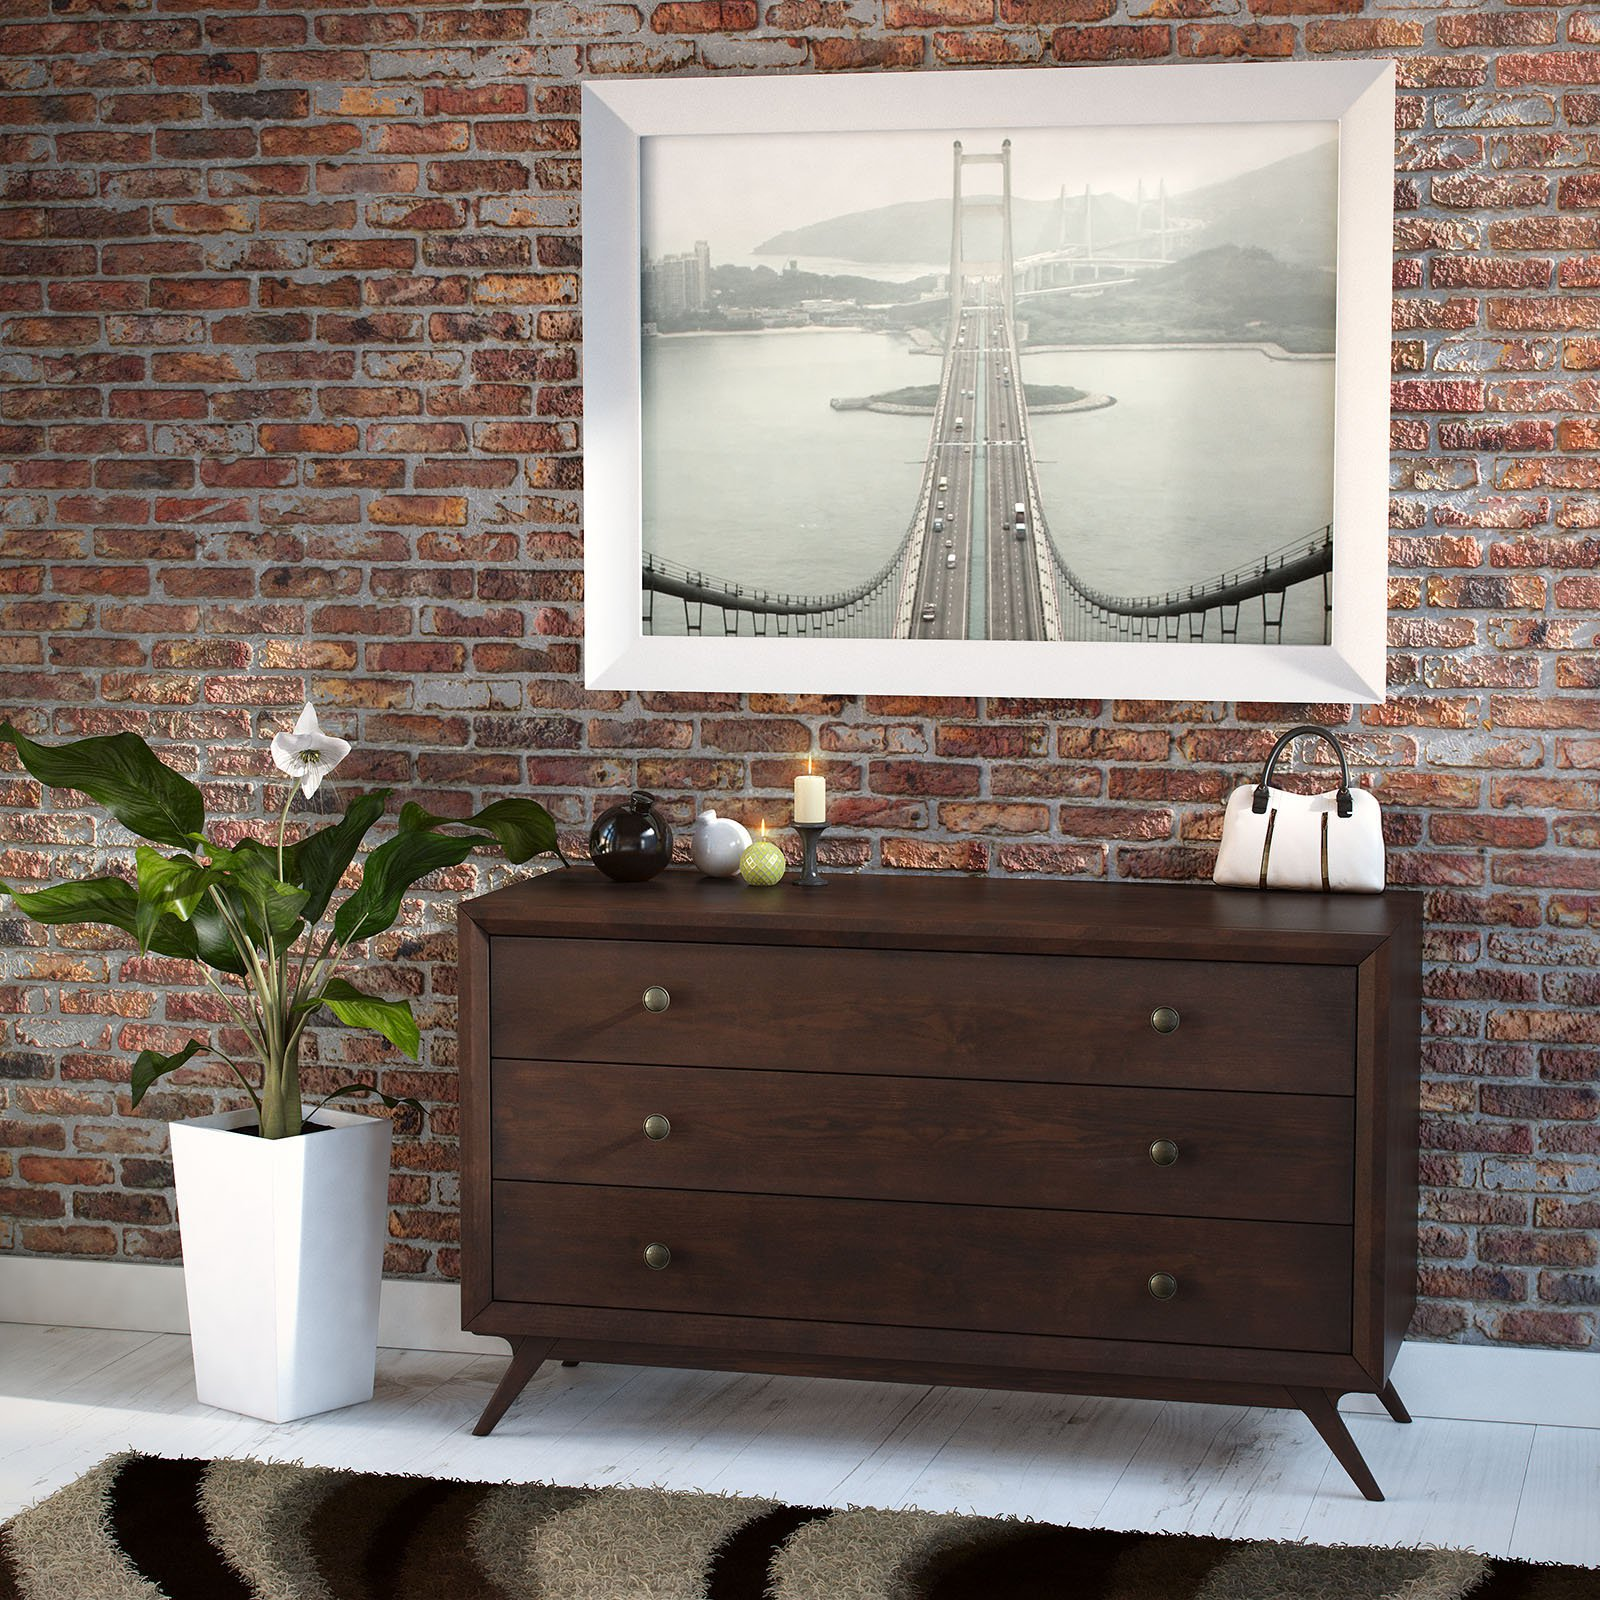 Modway Tracy Three-Drawer Wood Dresser, Multiple Colors